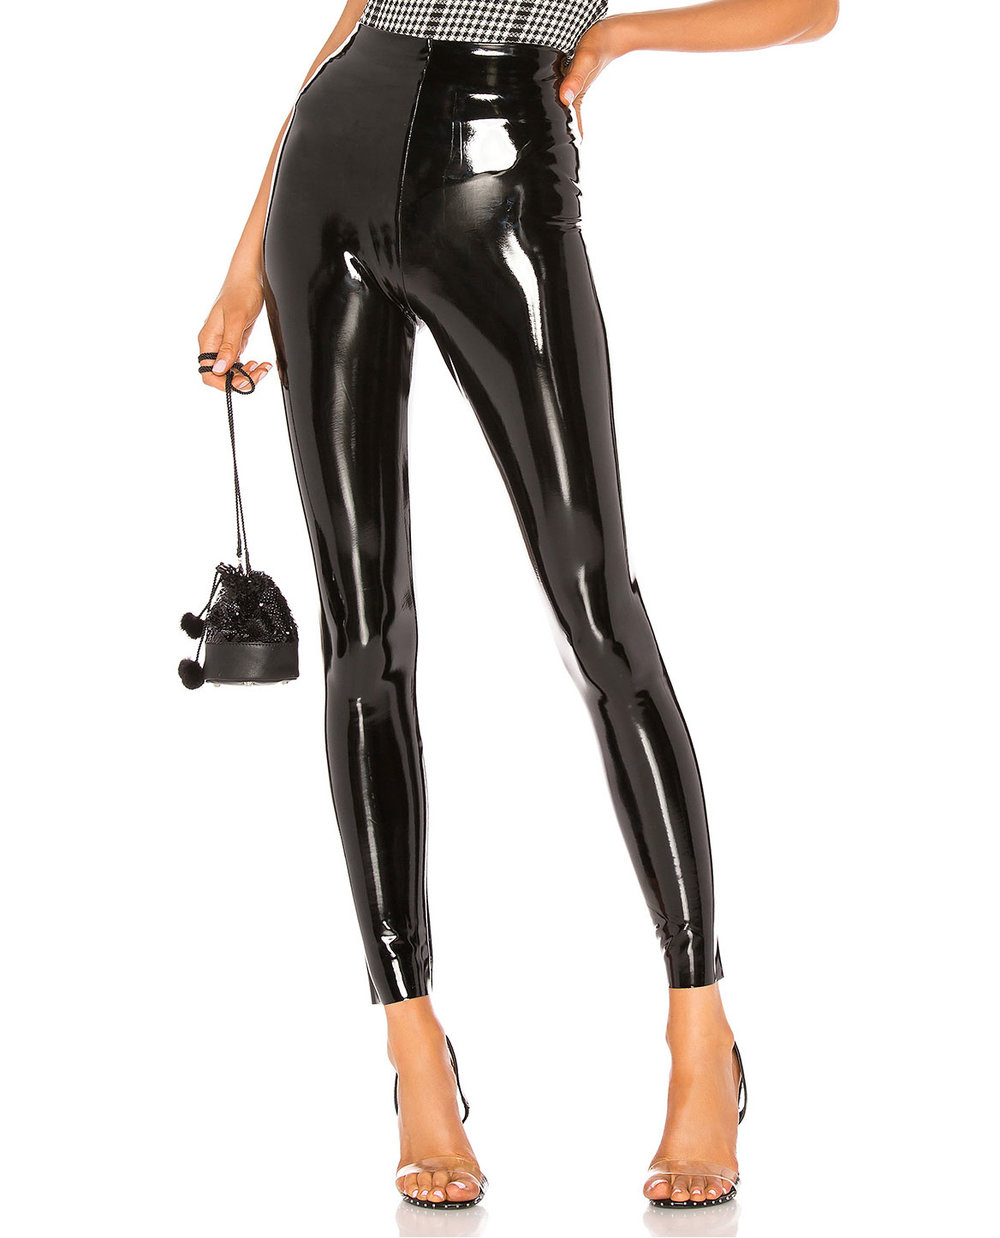 Commando Patent Leggings       $98